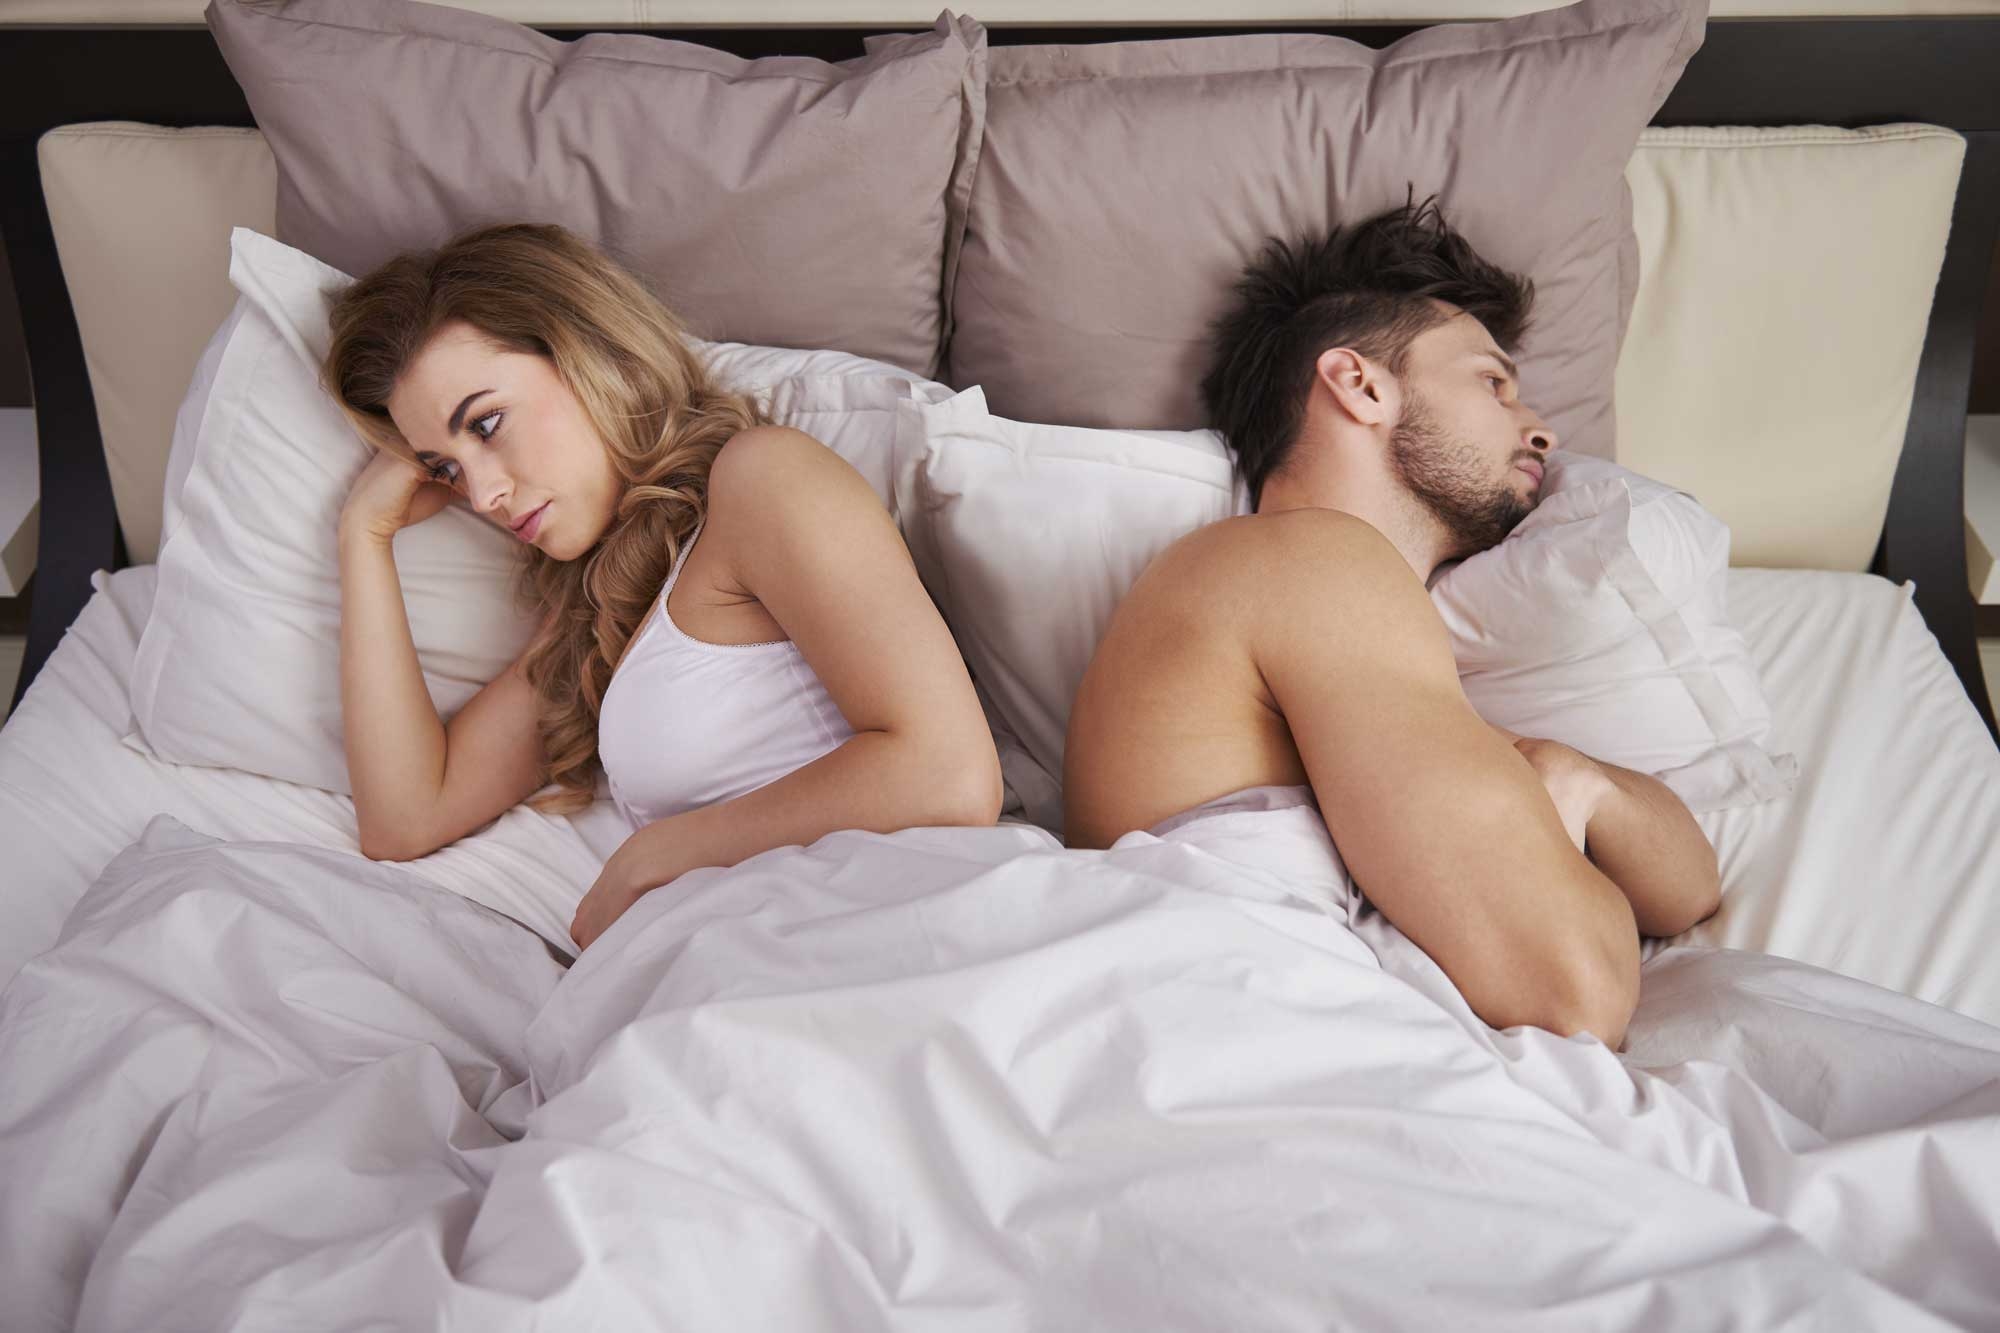 Local Couple: Sex Was Really Good Until Husband Got Involved